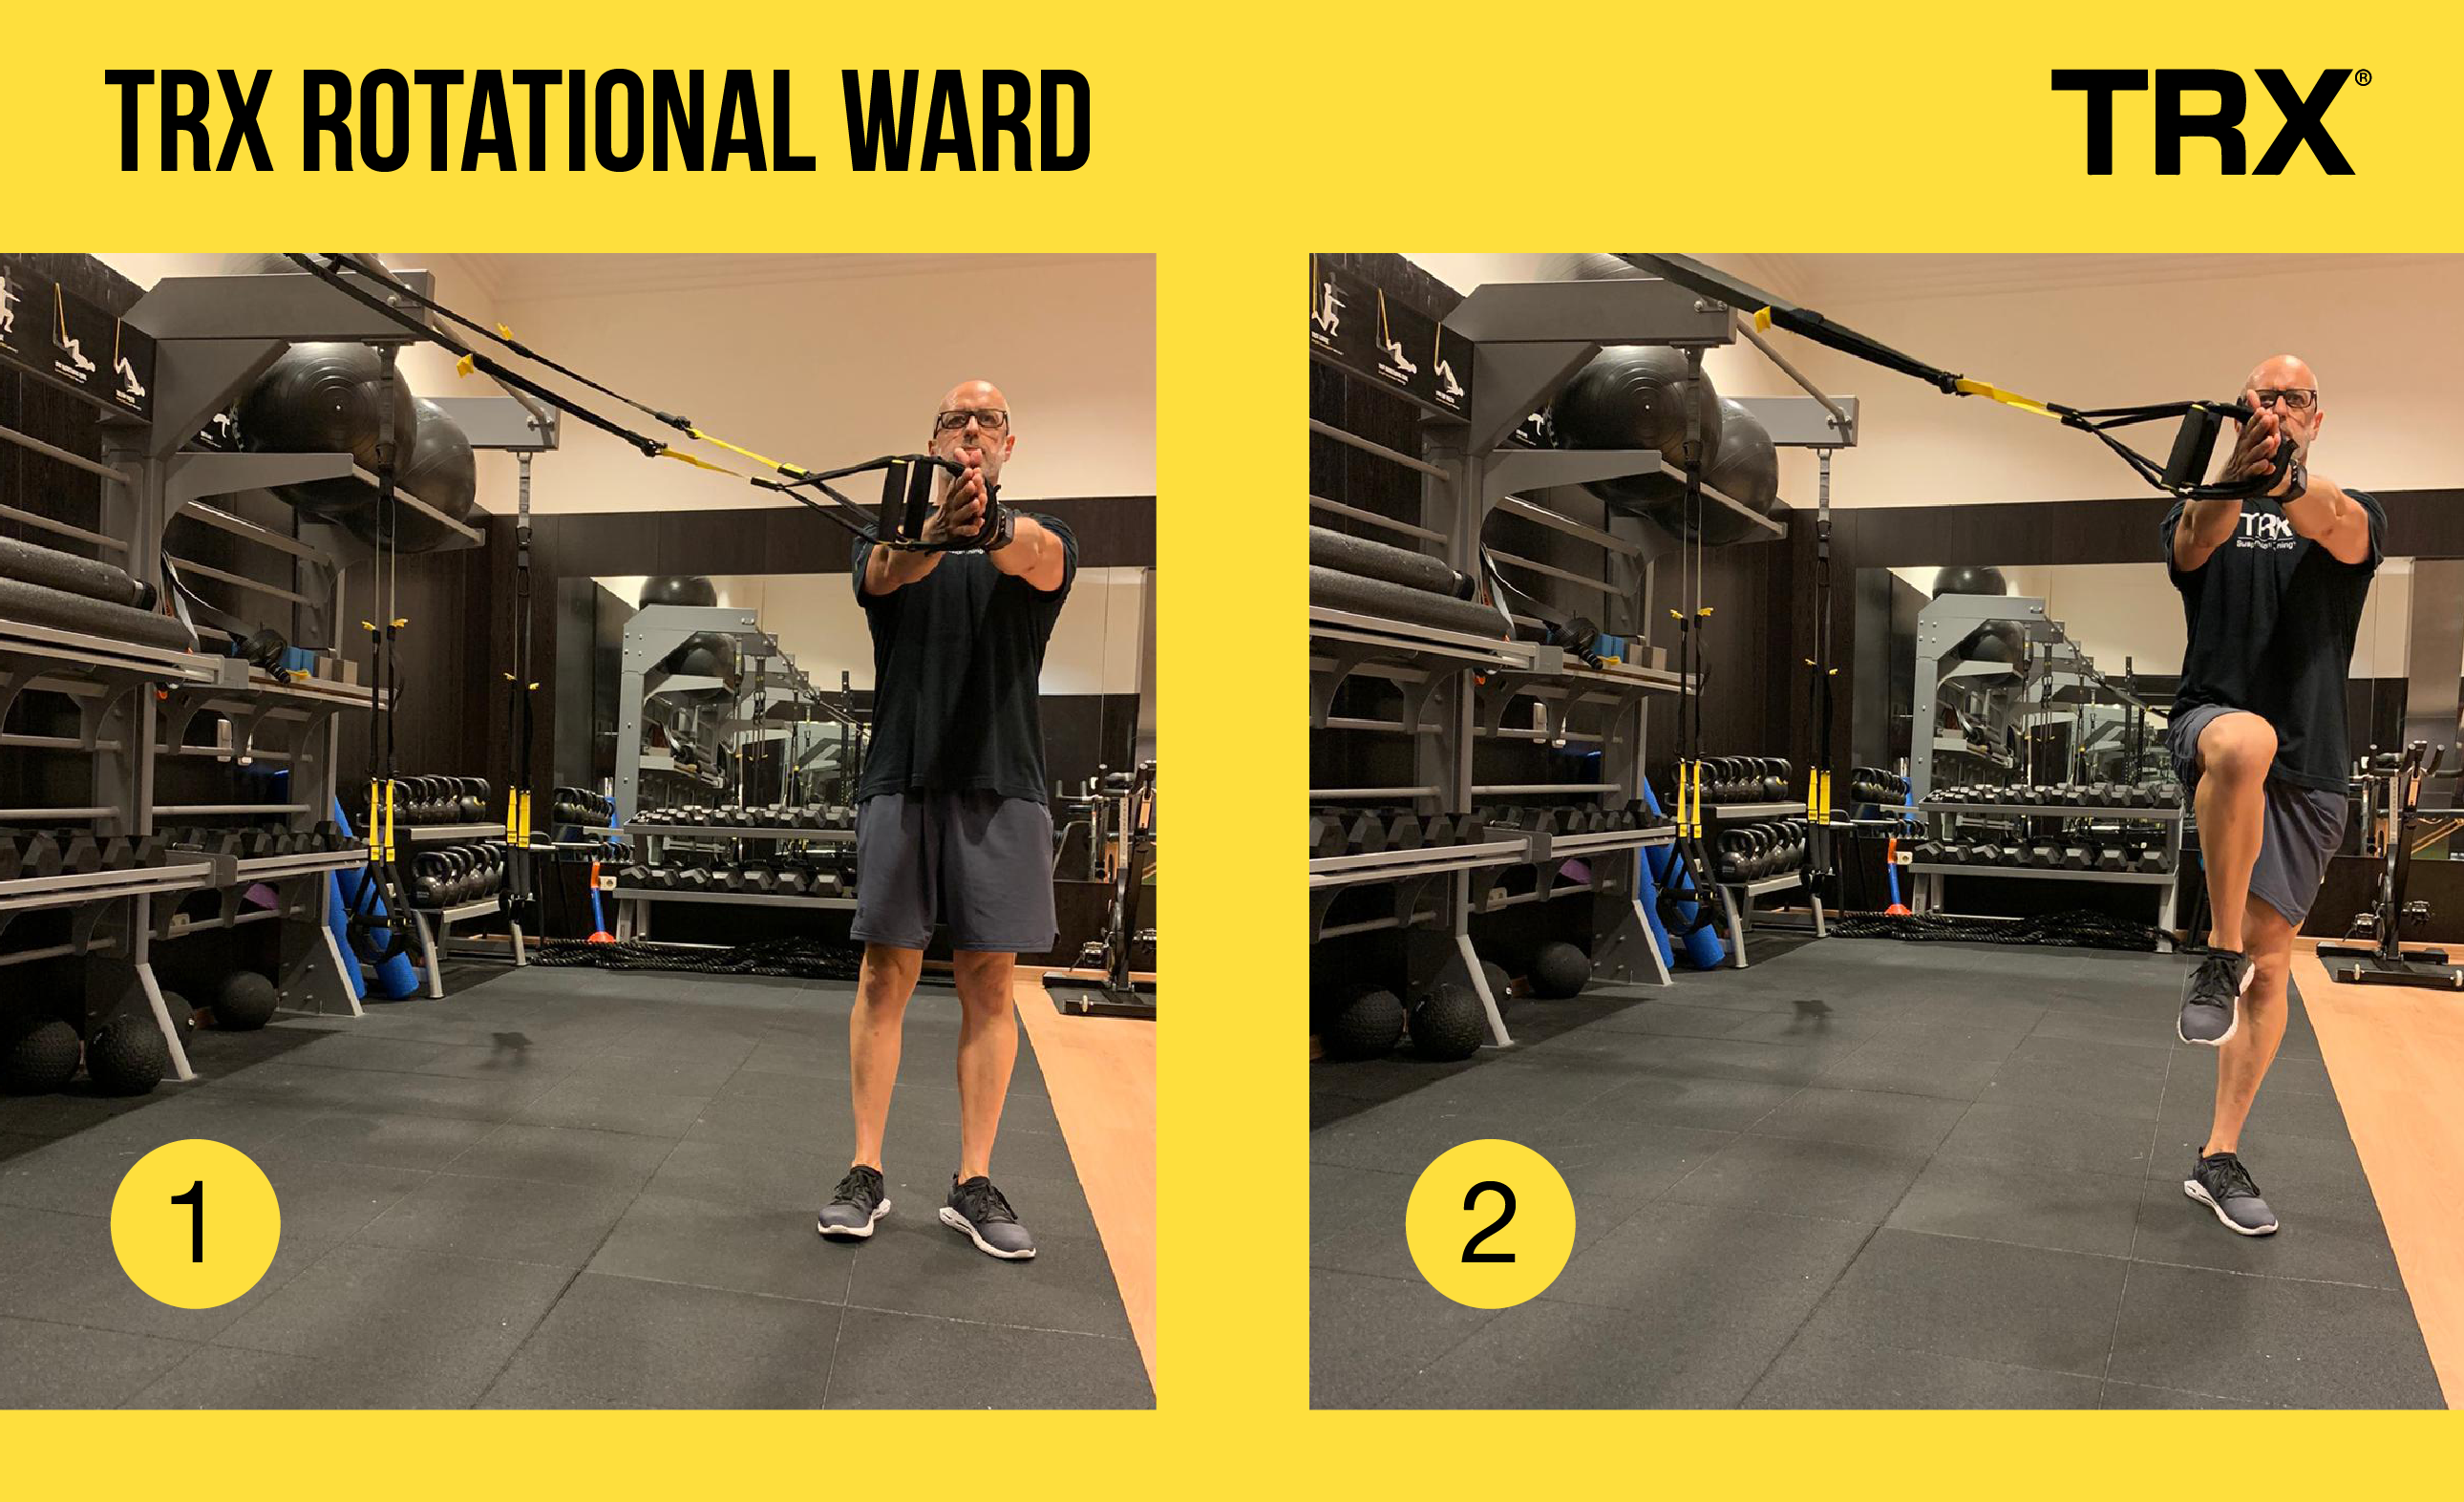 2-TRX Rotational Ward